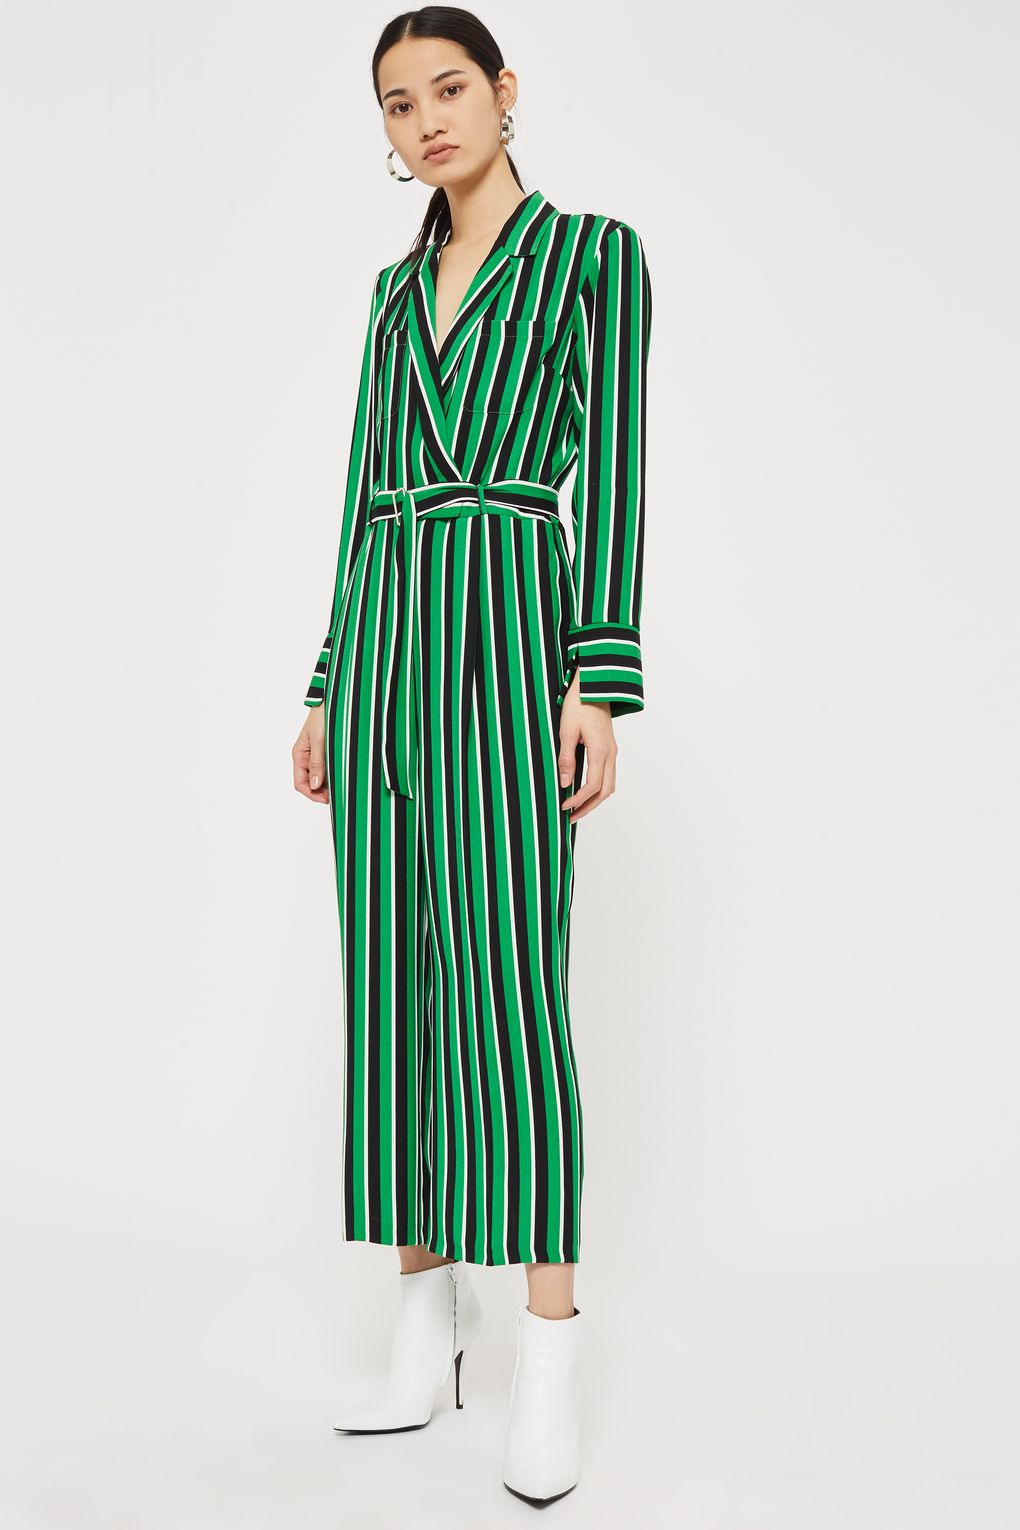 fashion, clothing, trends, style, topshop, personal style, stripes, jumpsuit, shopping